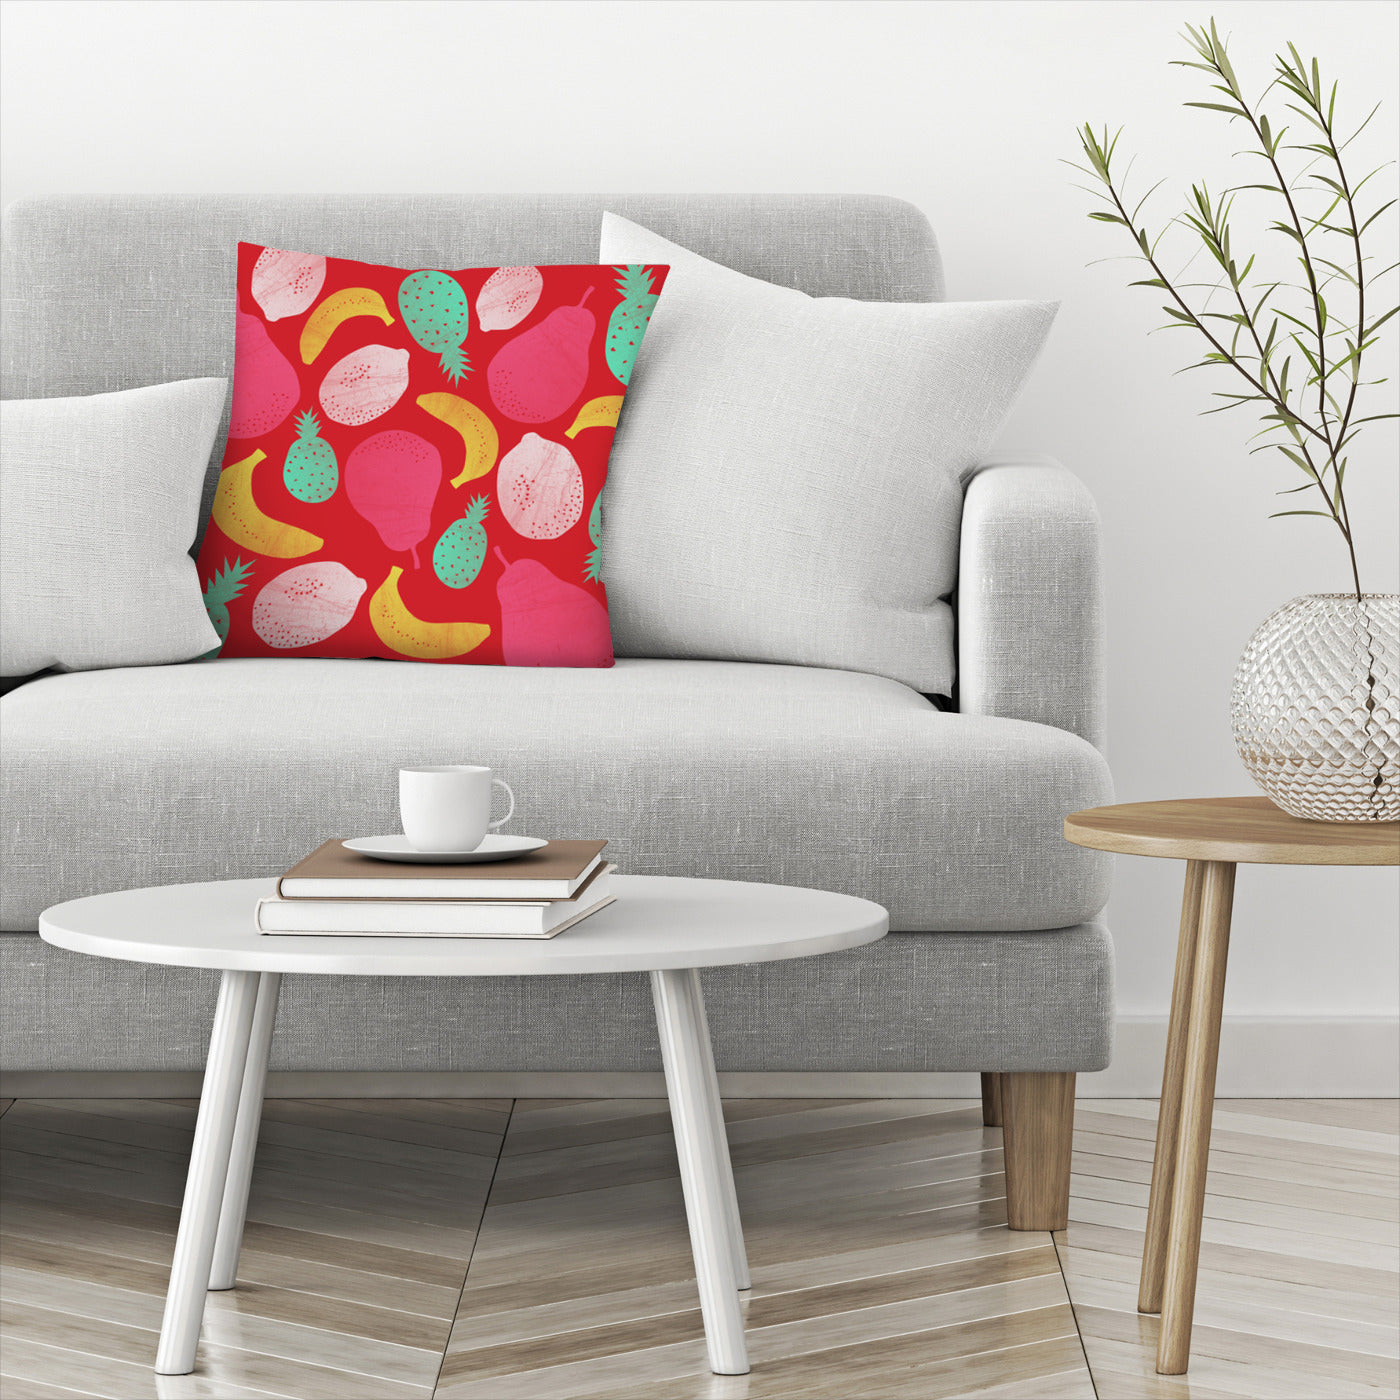 Fruit Salad by Susana Paz Decorative Pillow - Decorative Pillow - Americanflat